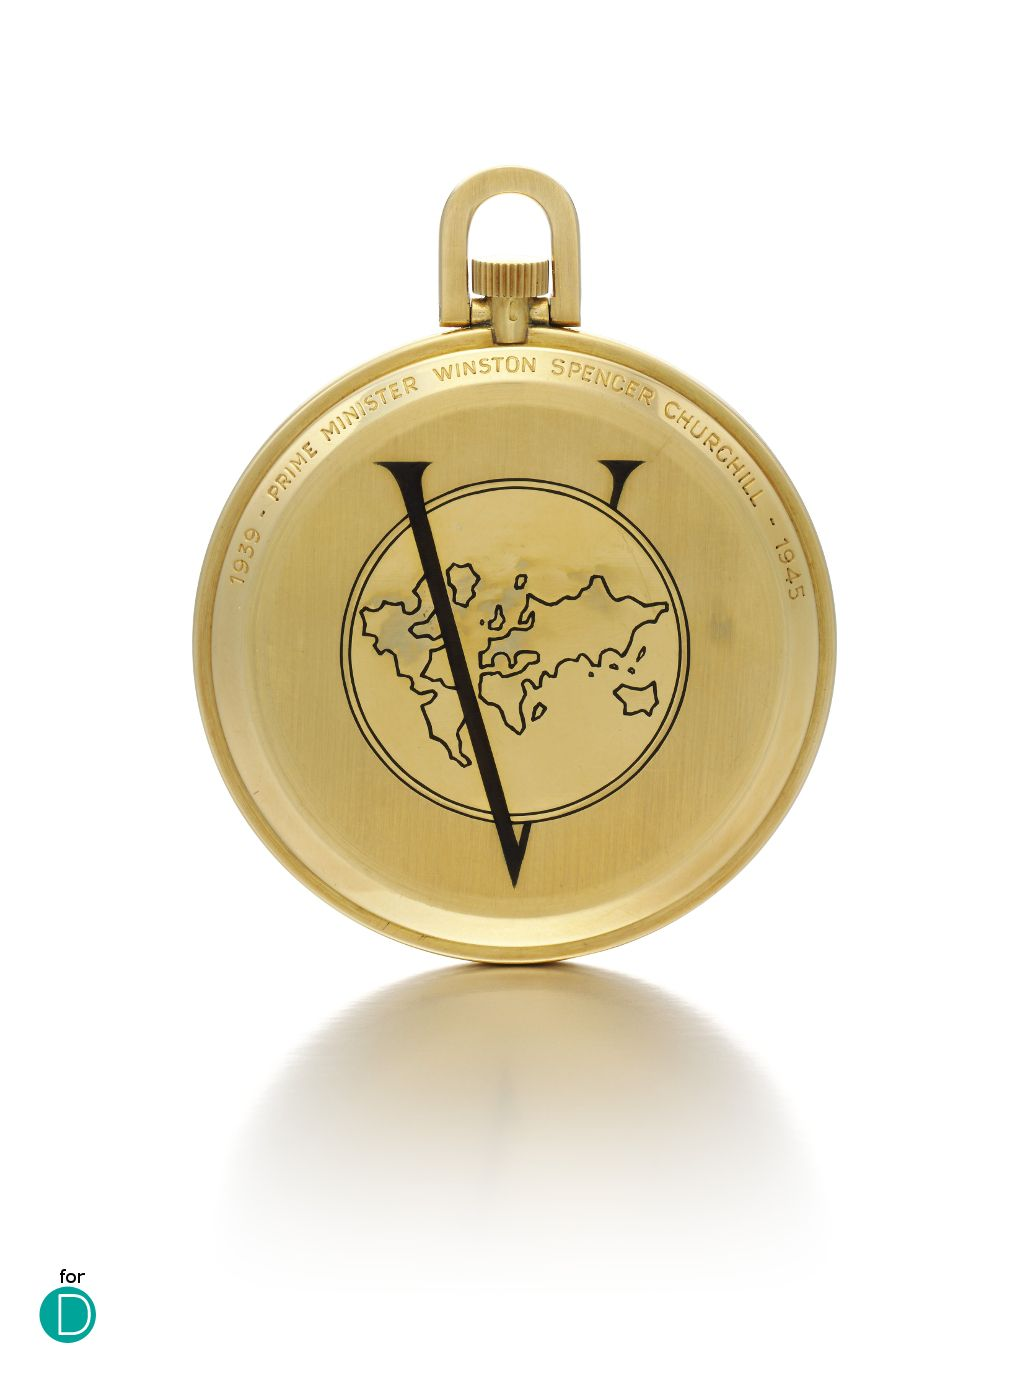 DEPLOYANT: Sotheby's to auction Victory pocket watch given to Sir Winston Churchill